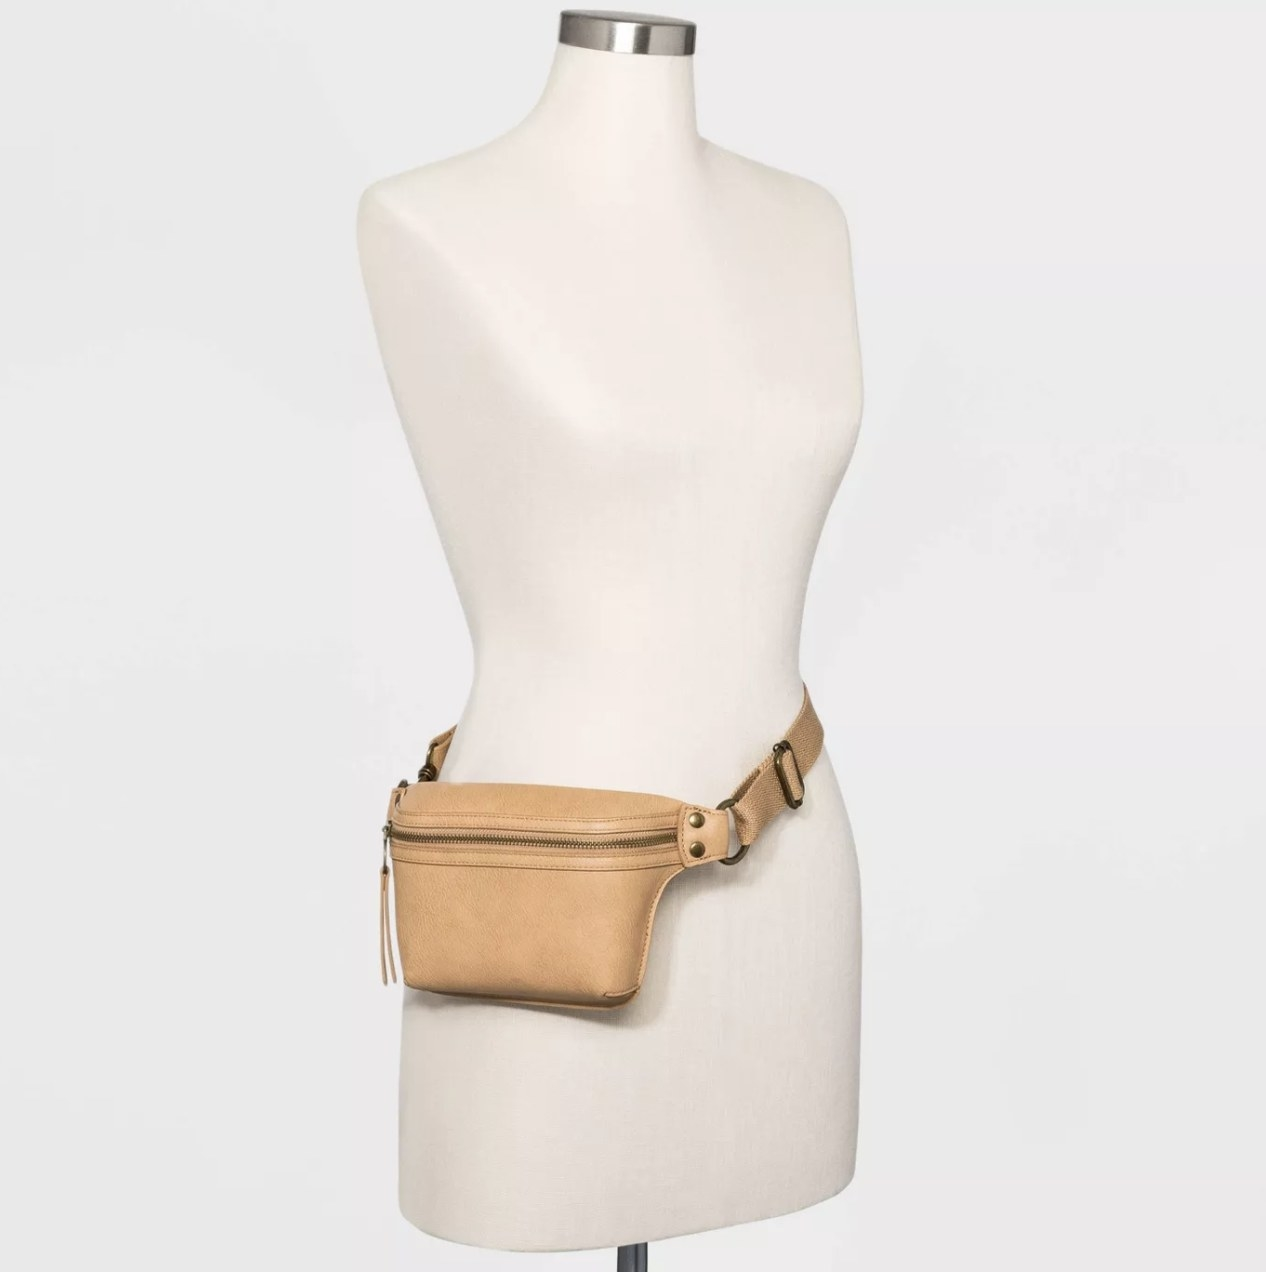 A faux-leather light tan fanny pack worn on a mannequin